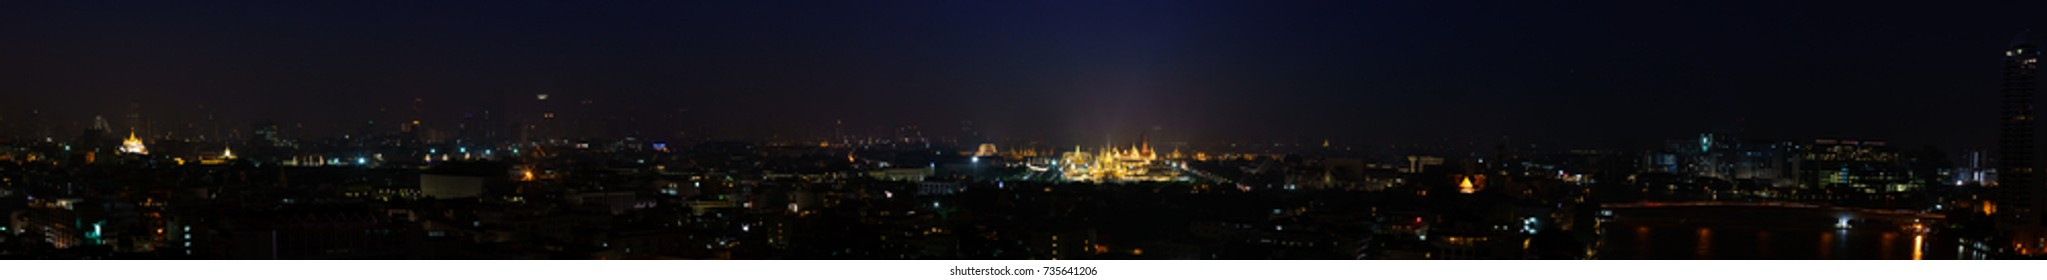 Bangkok, Thailand - October 13, 2017 : panorama landscape at night, Construction site of The royal funeral pyre for HM King Bhumibol Adulyadej at Sanam Luang prepared to be used as The royal funeral